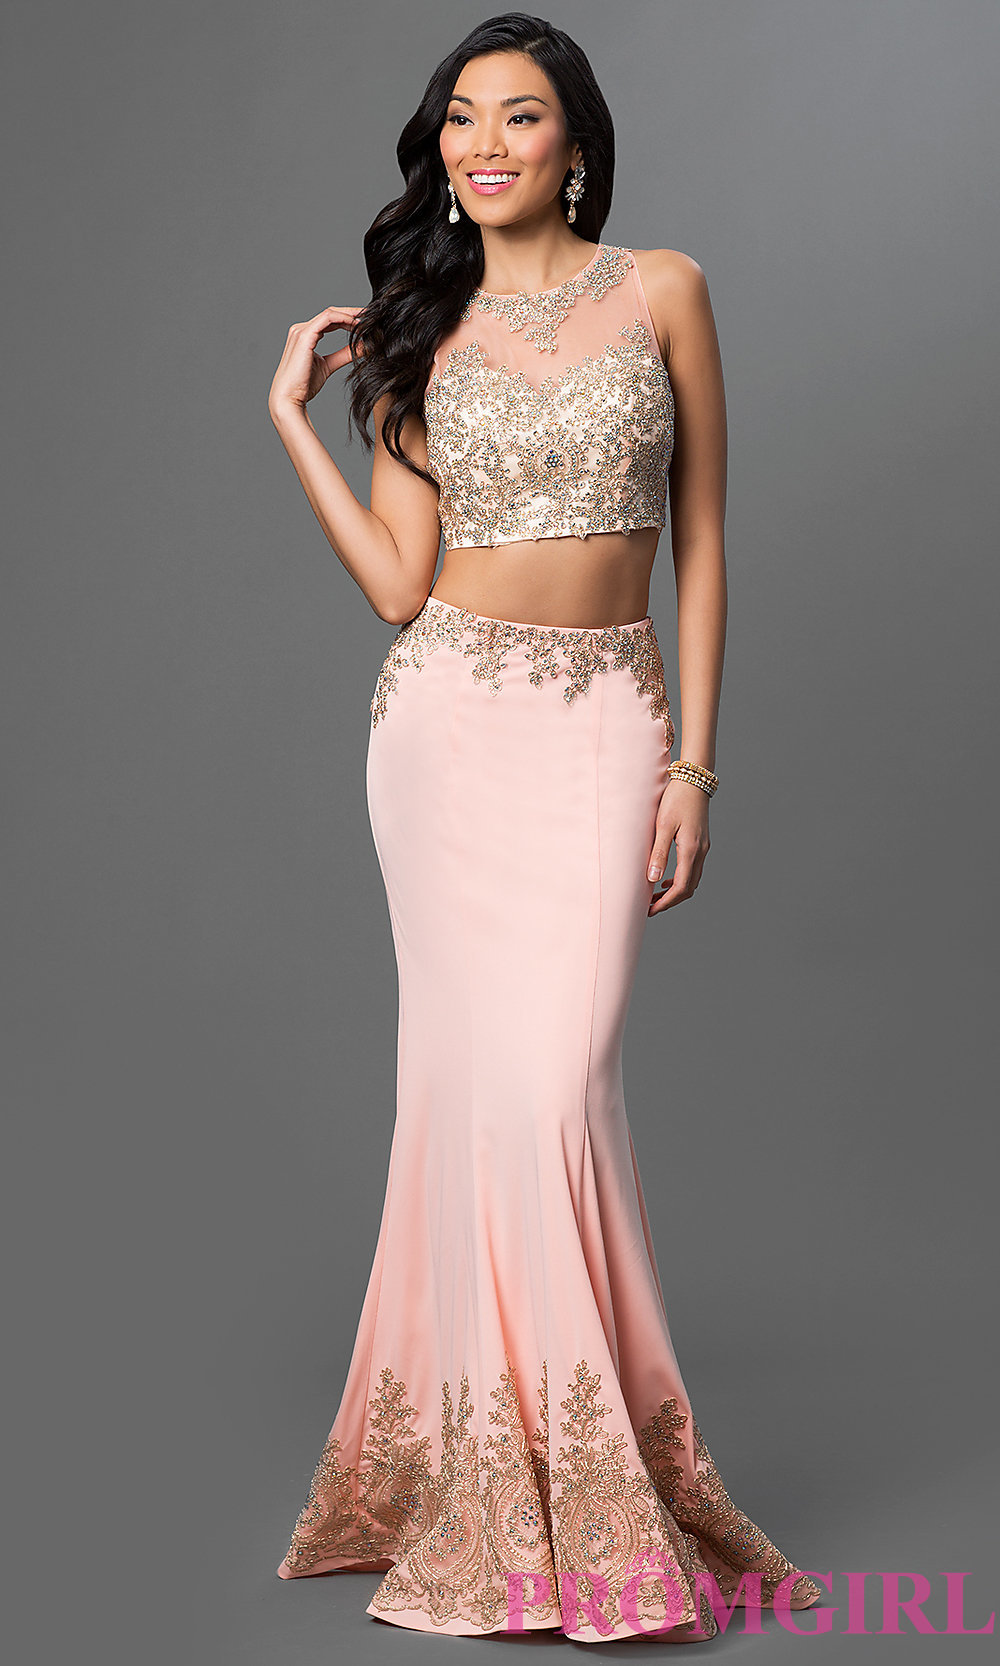 Two Piece Floor Length Dress With Lace Accents